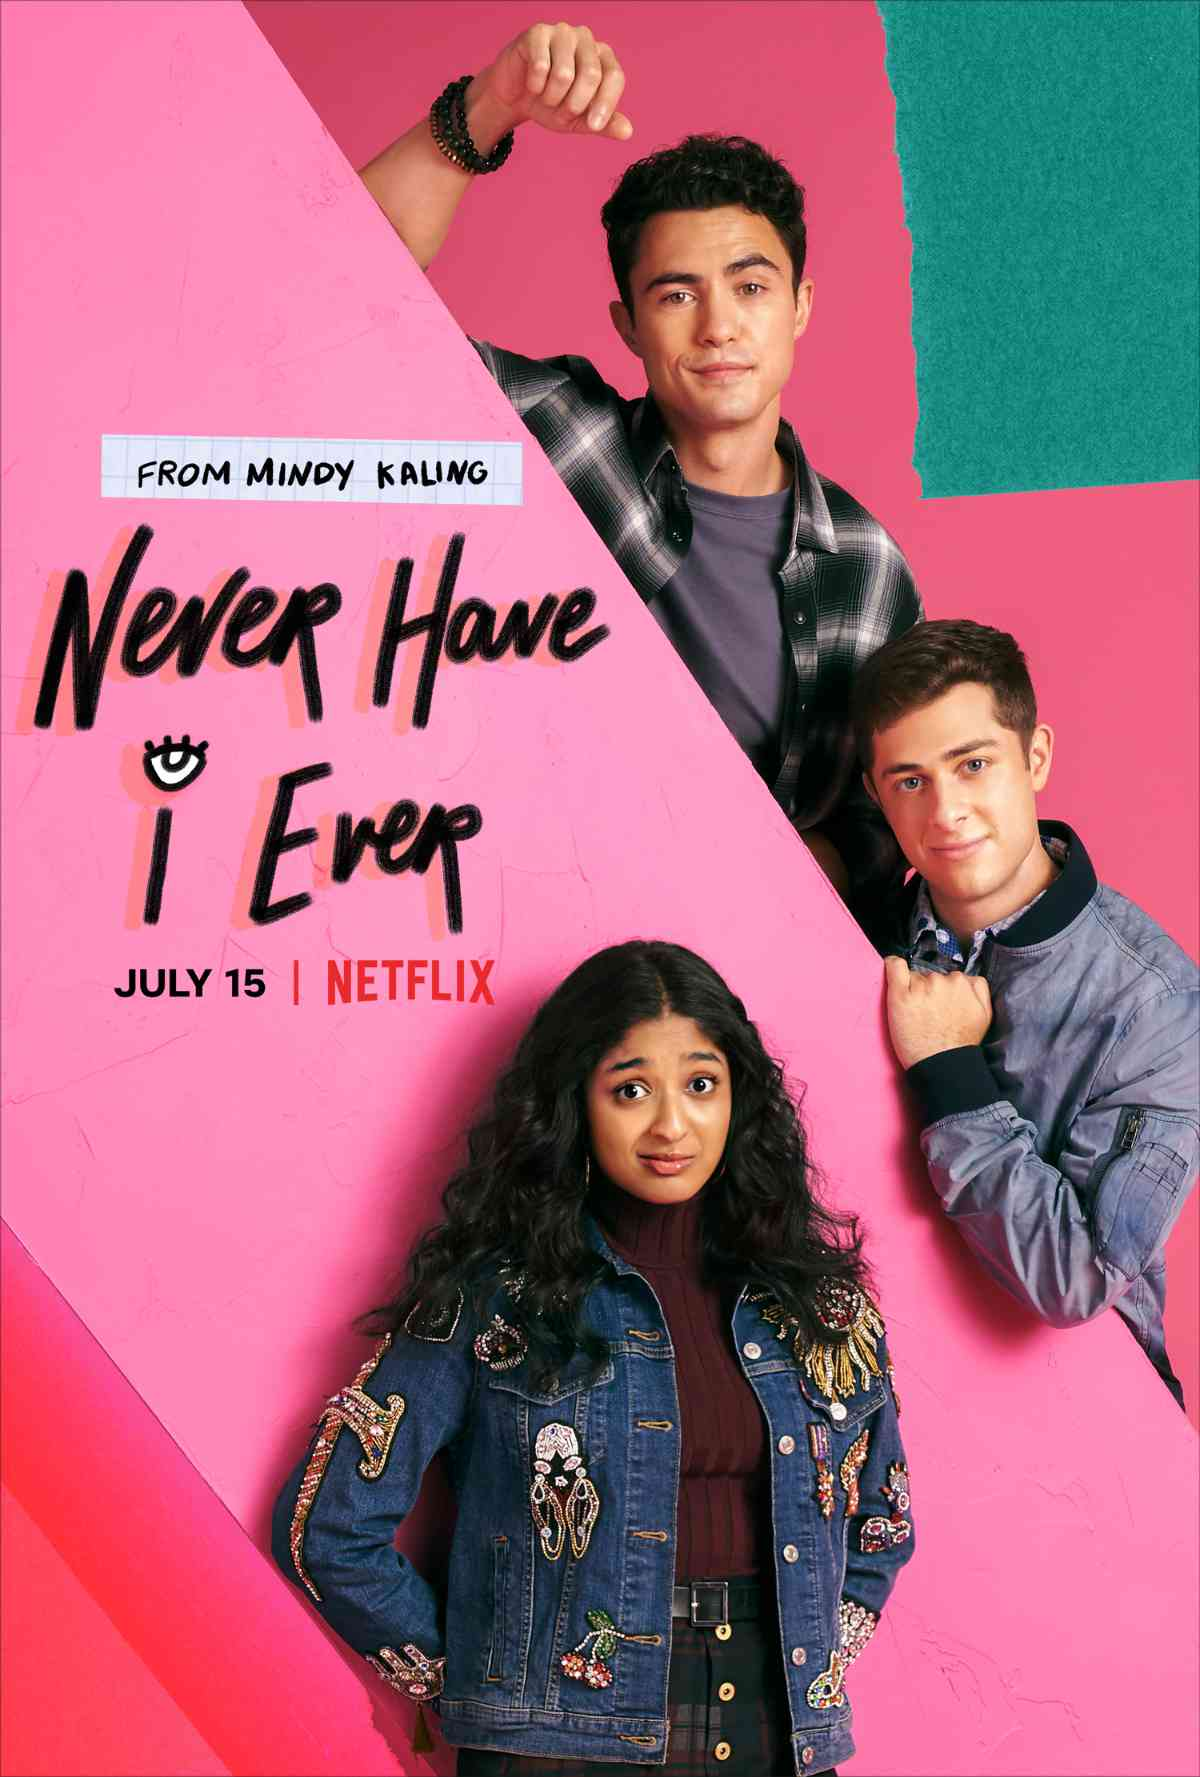 Watch the Never Have I Ever Season 2 Trailer from Netflix